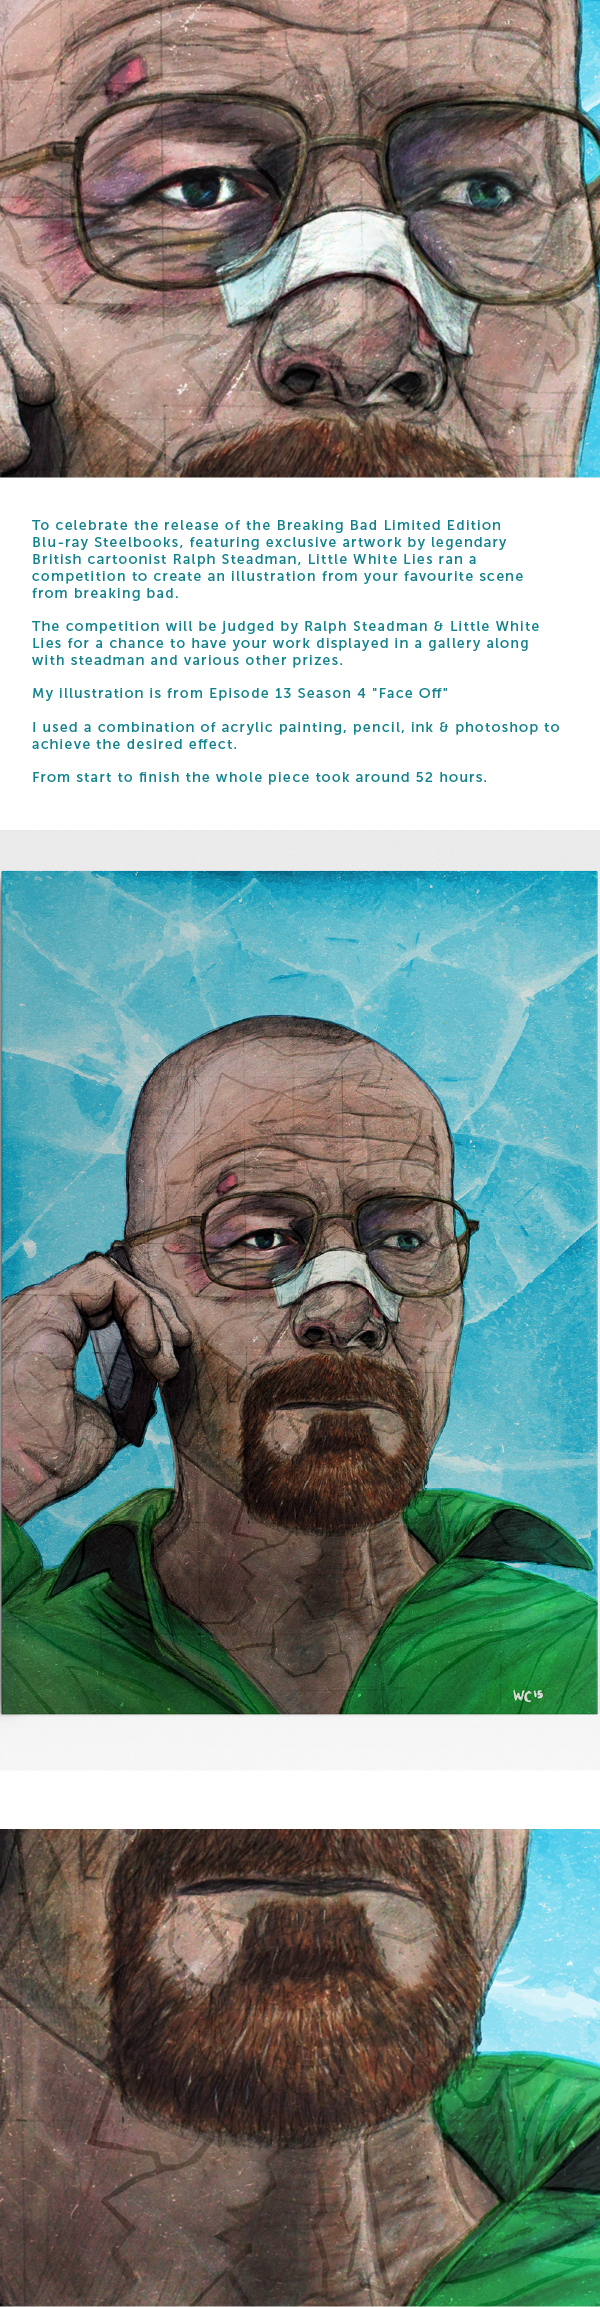 b193a4ca0d69 Little White Lies Illustration Entry - Breaking Bad on Behance